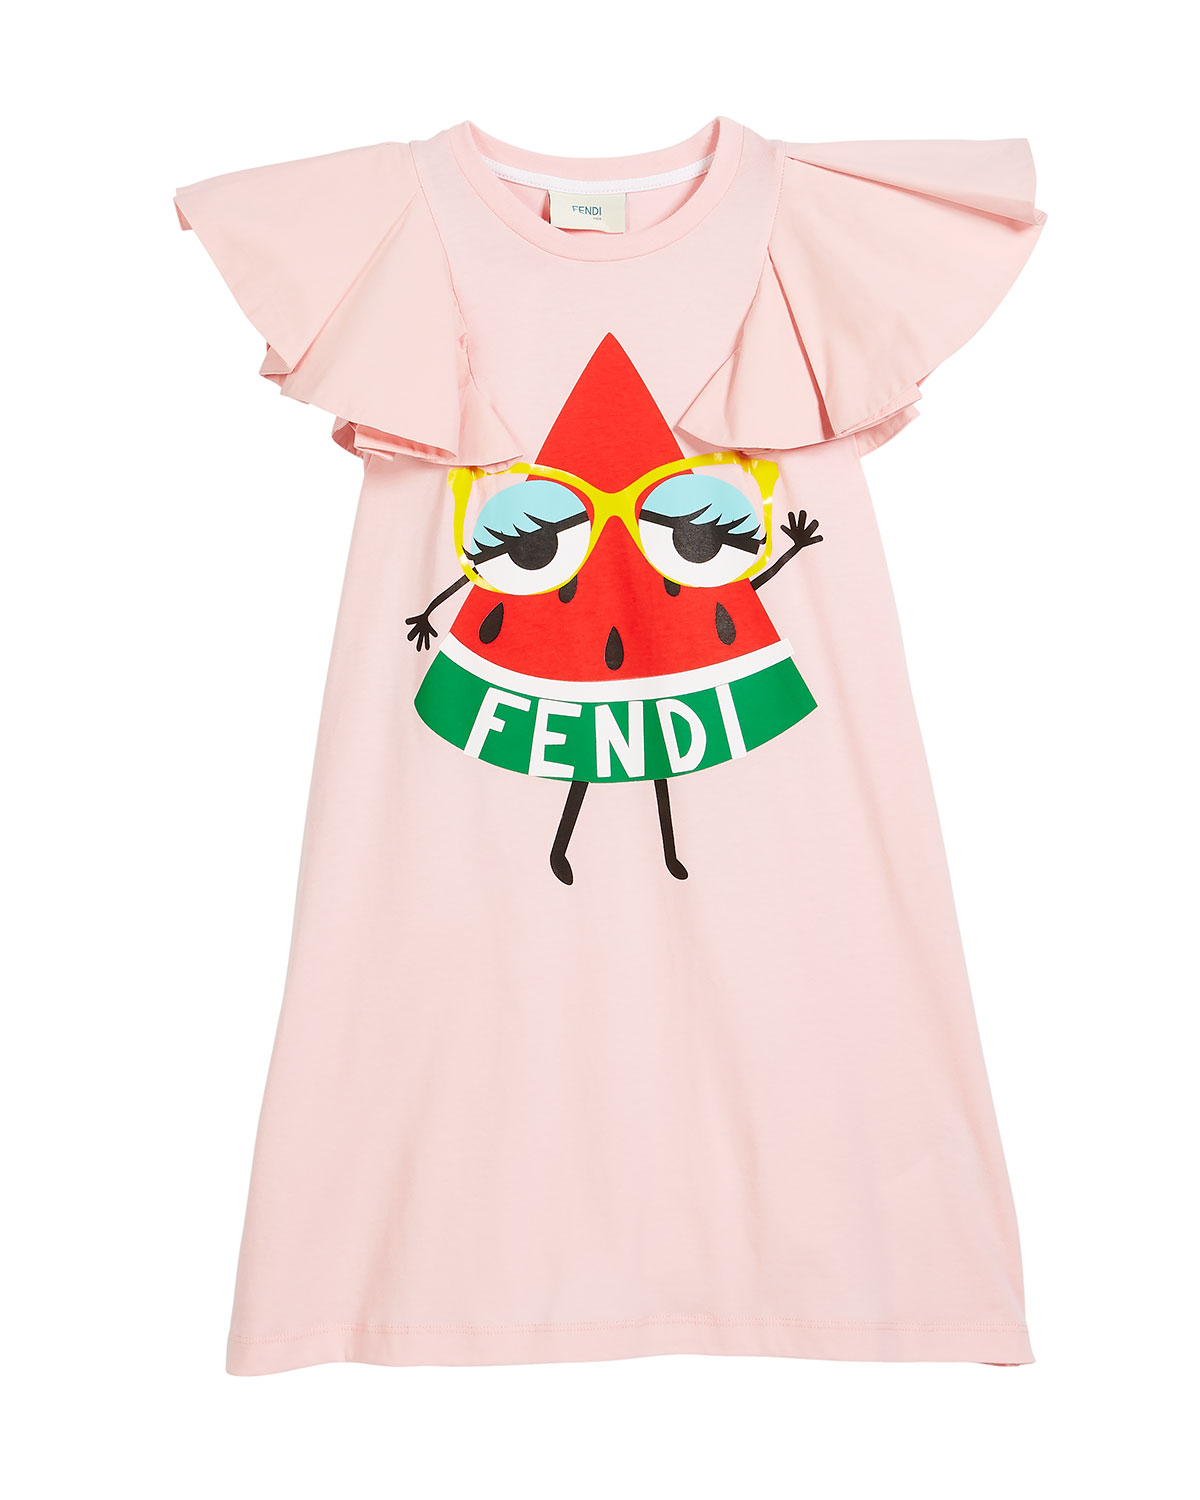 Watermelon Logo Dress, Size 10-12